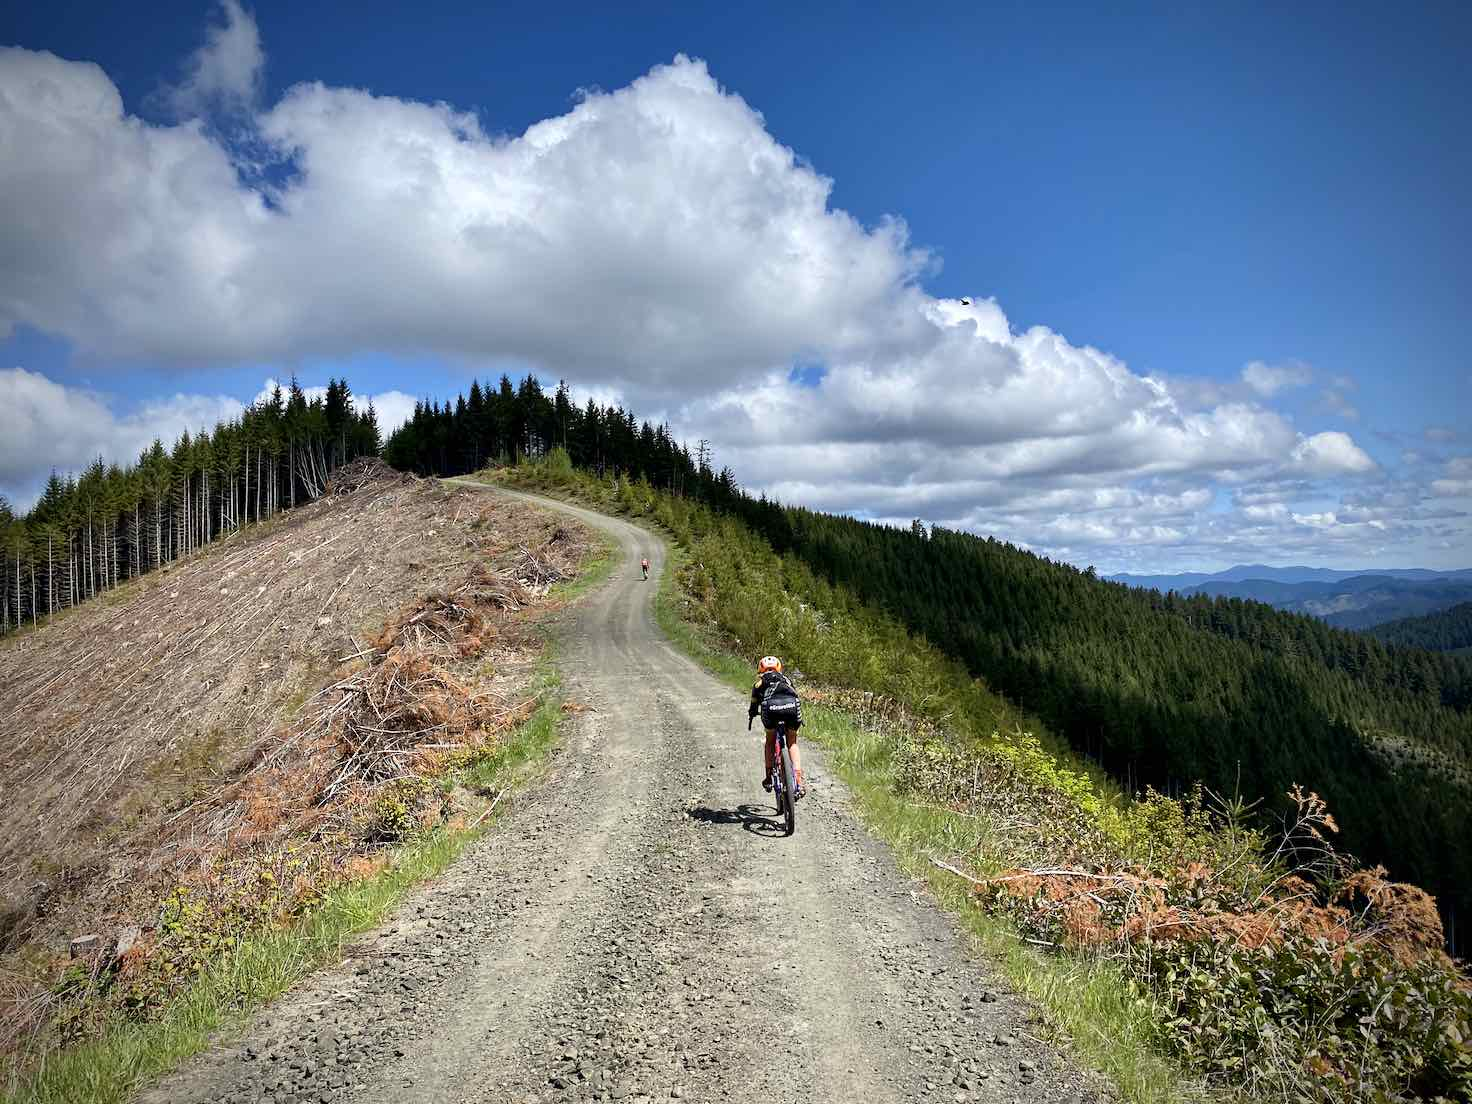 Gravel girl climbing a logging road along a ridge in the Siuslaw forest.